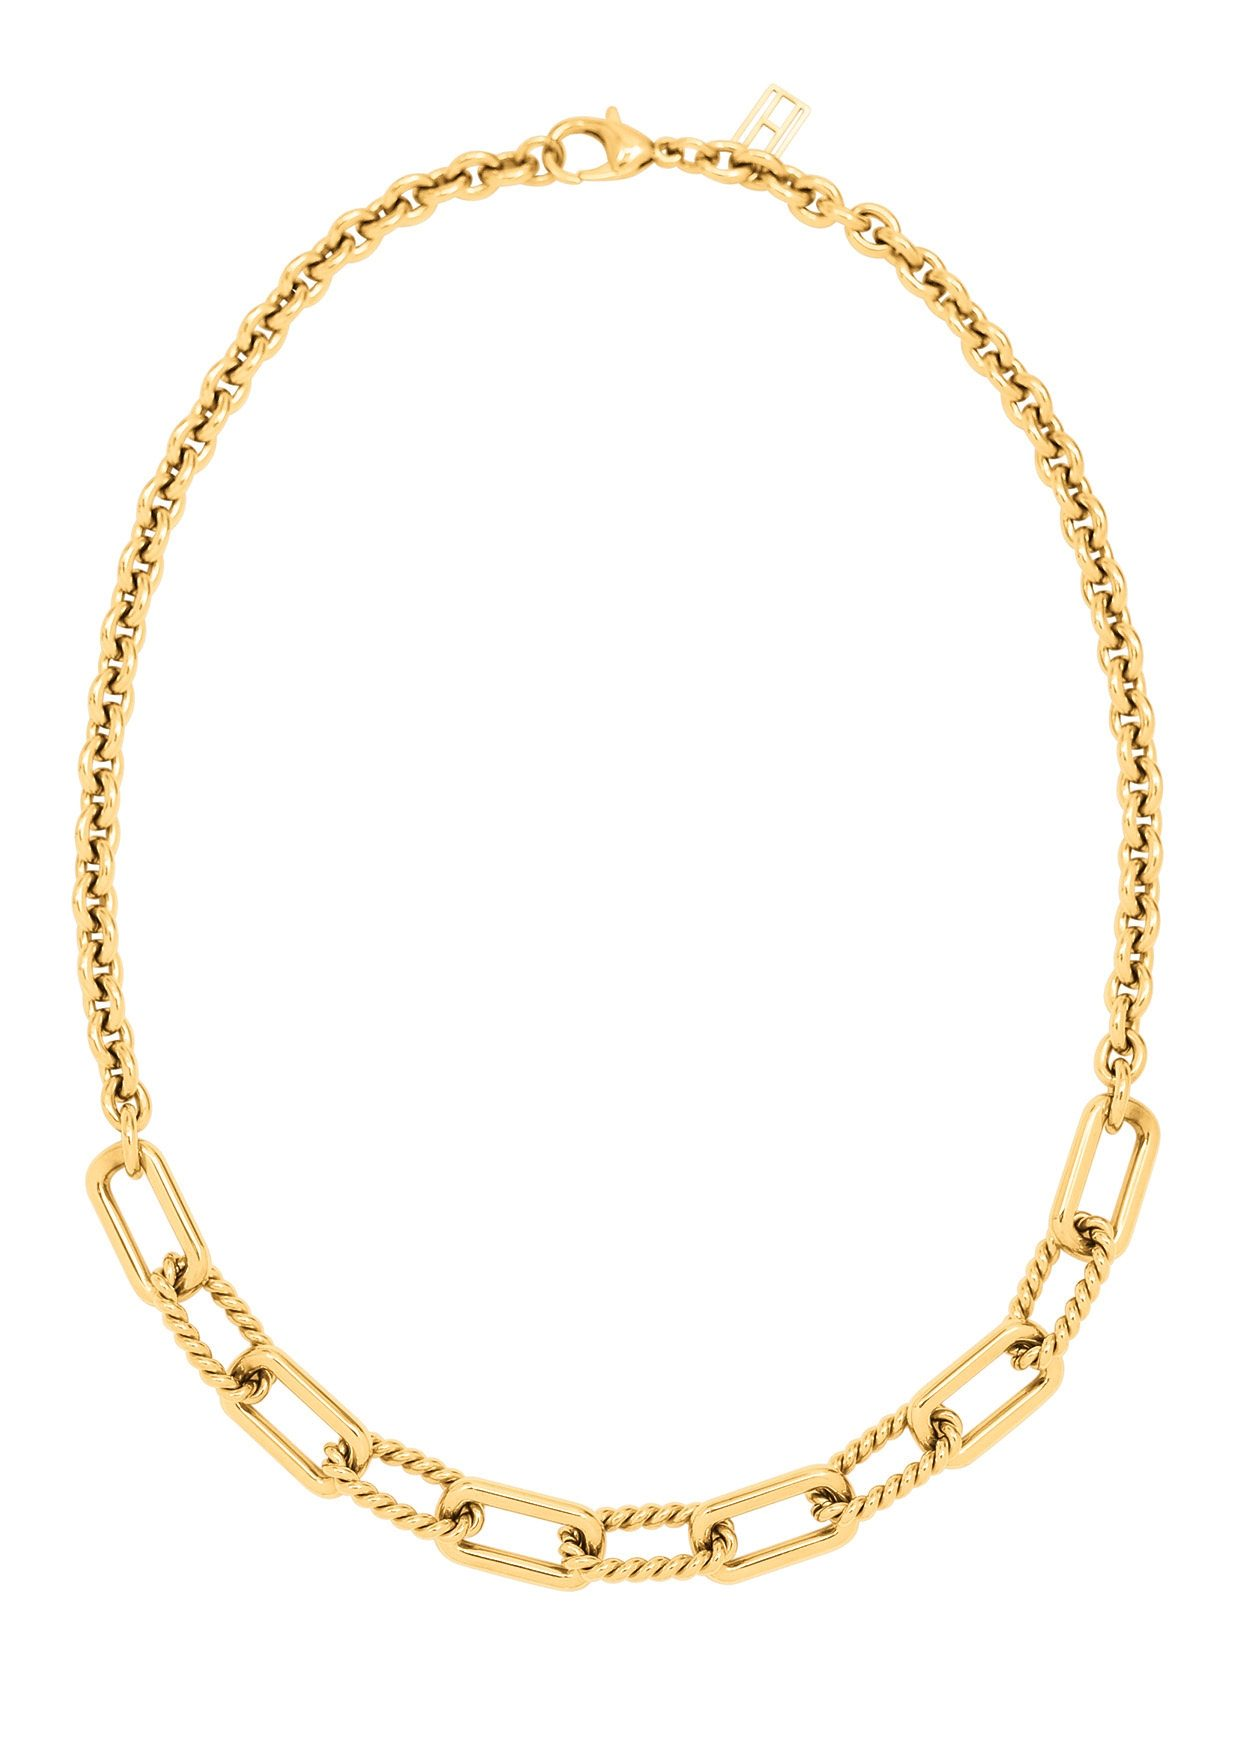 Tommy Hilfiger Jewelry Edelstahlkette, »Classic Signature, 2700667«